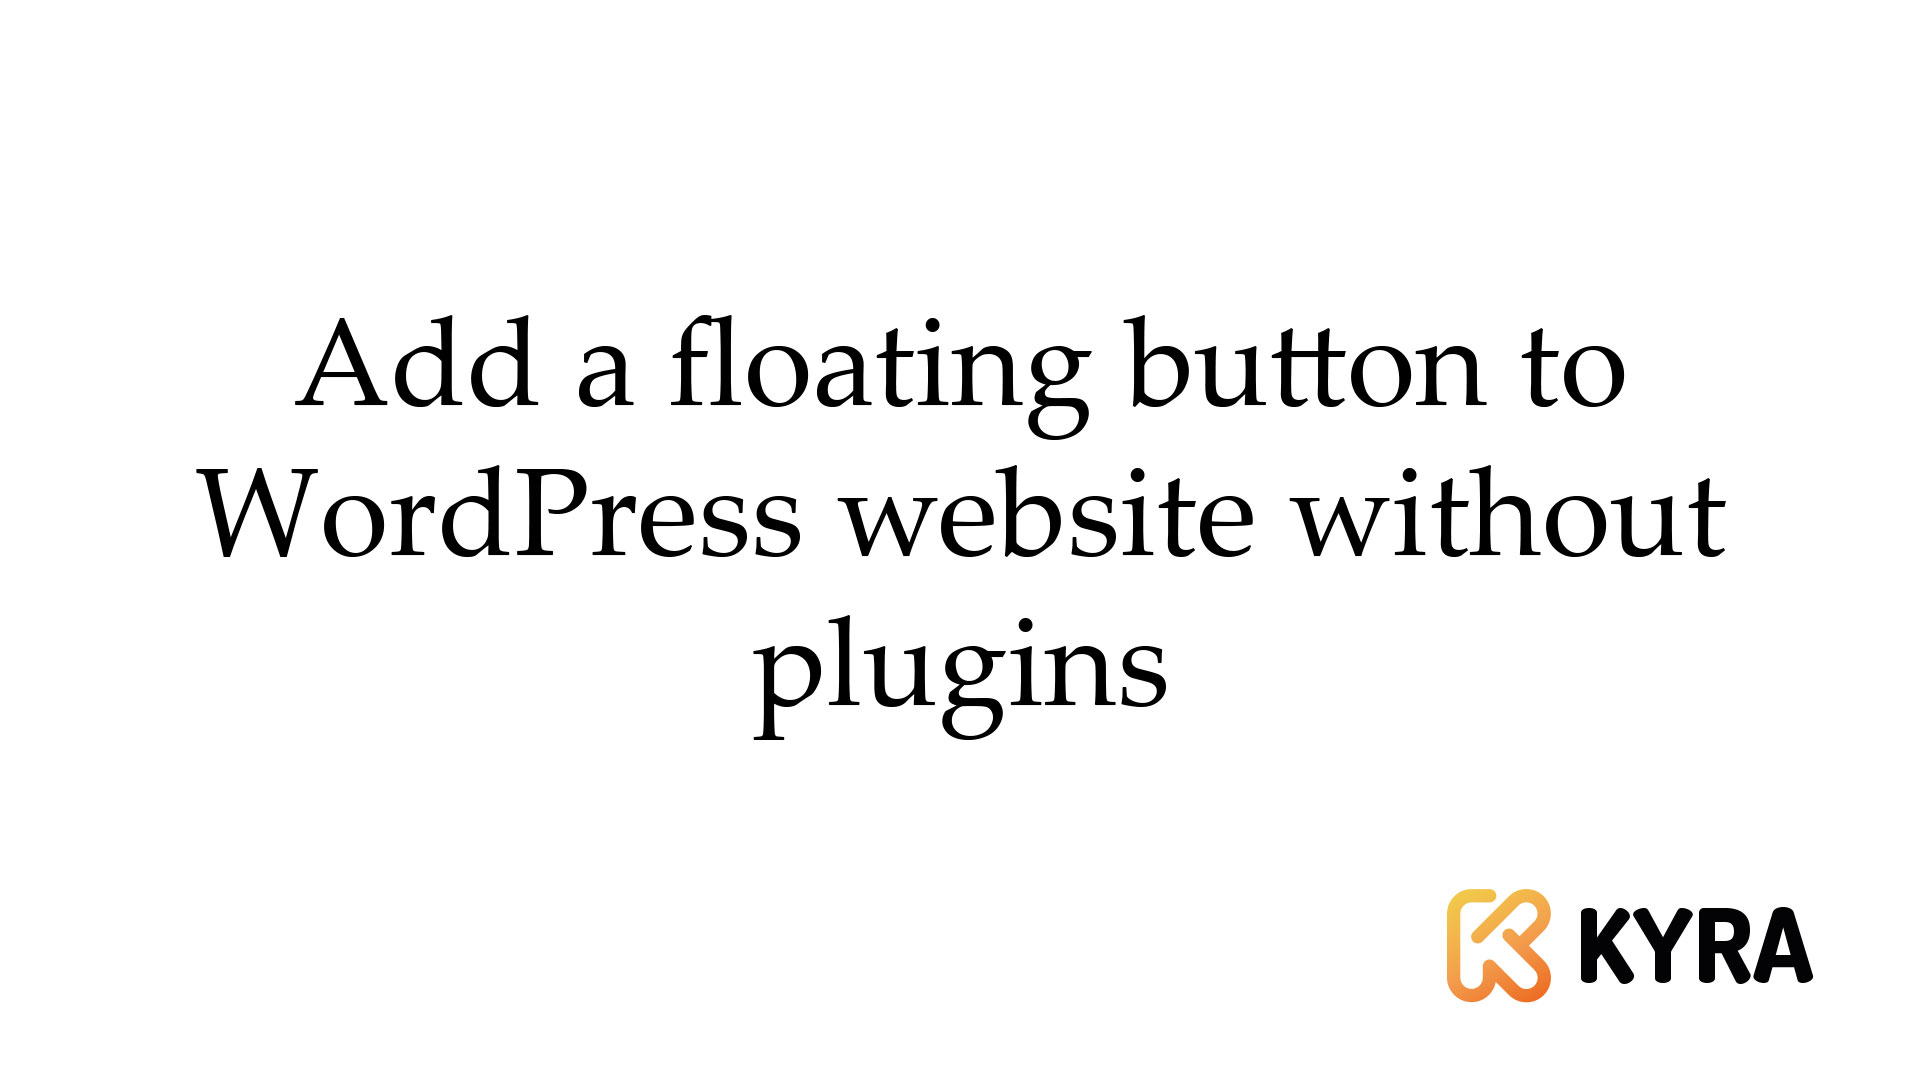 Add a floating button to WordPress website without plugins